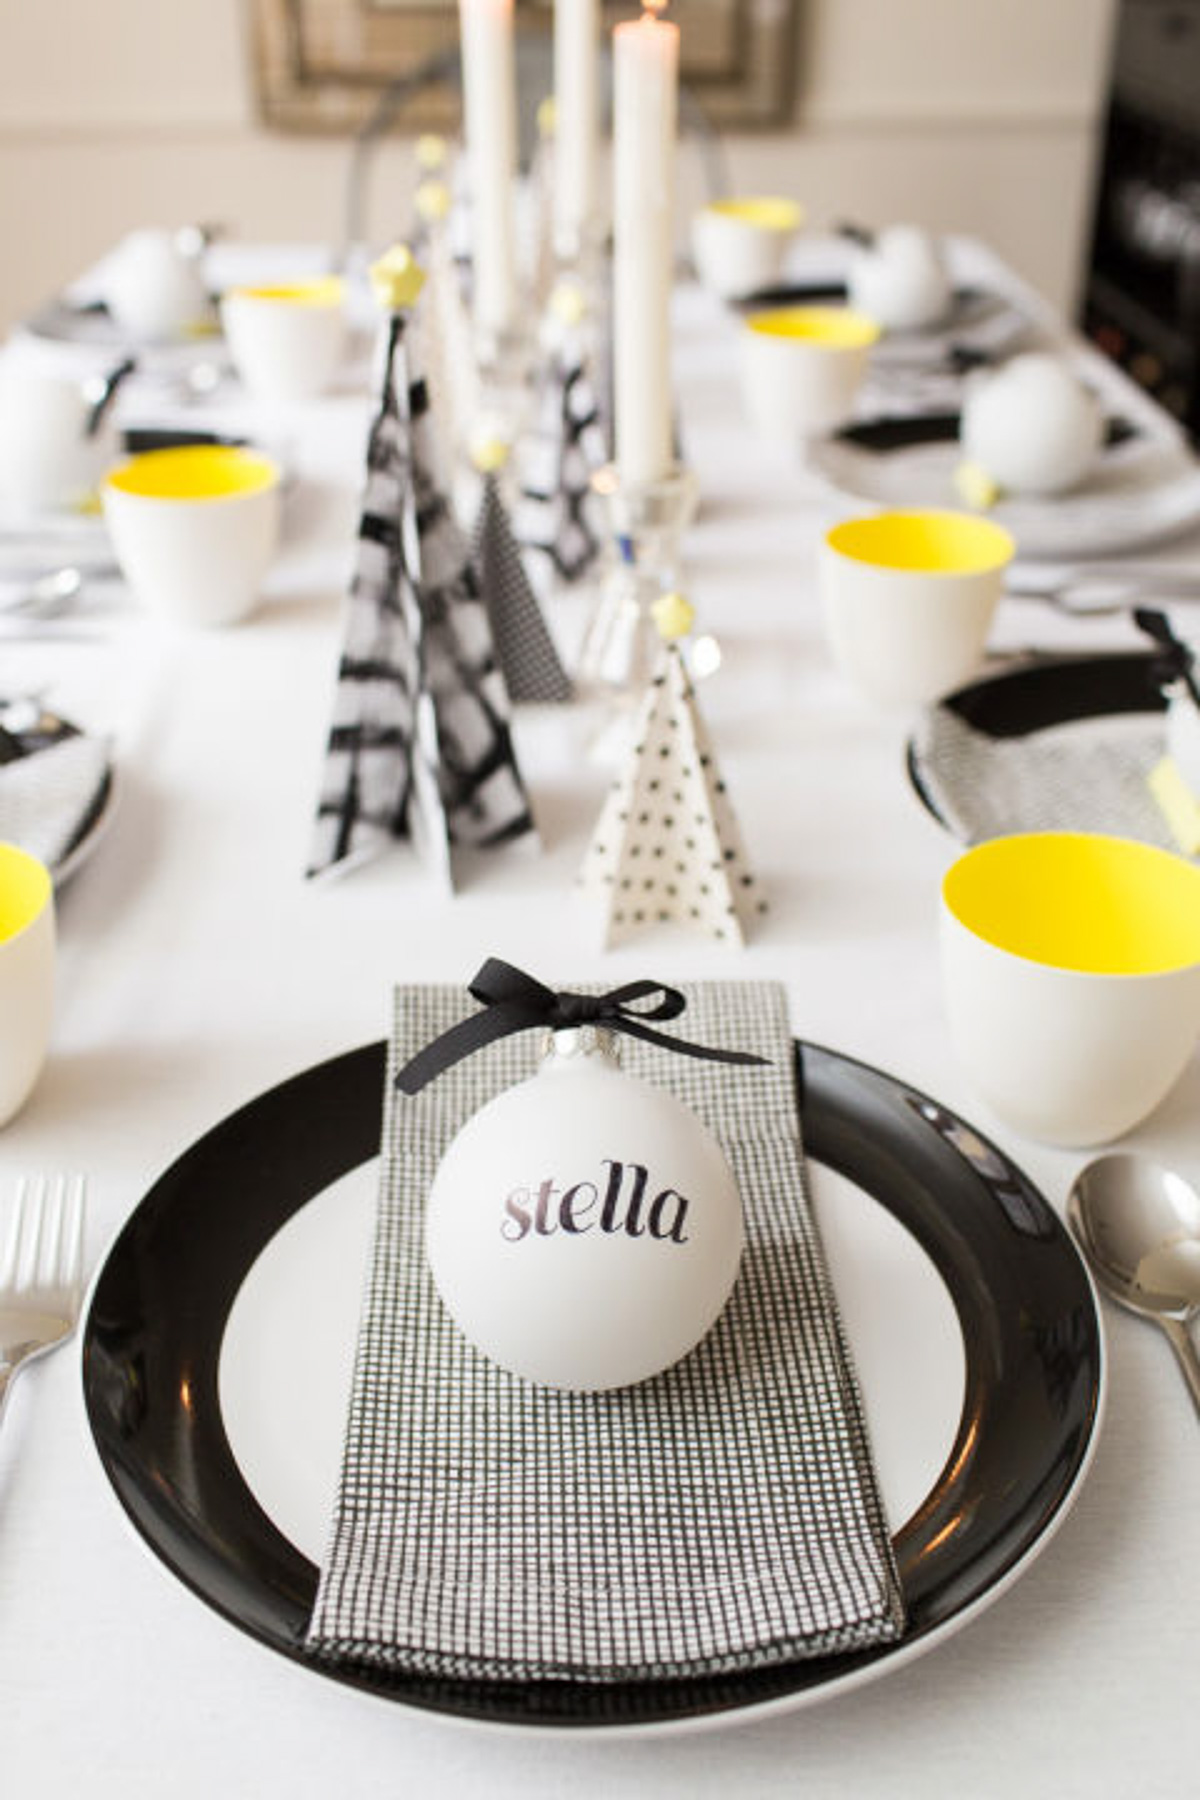 Diy christmas table decorations ideas - A Quirky Christmas